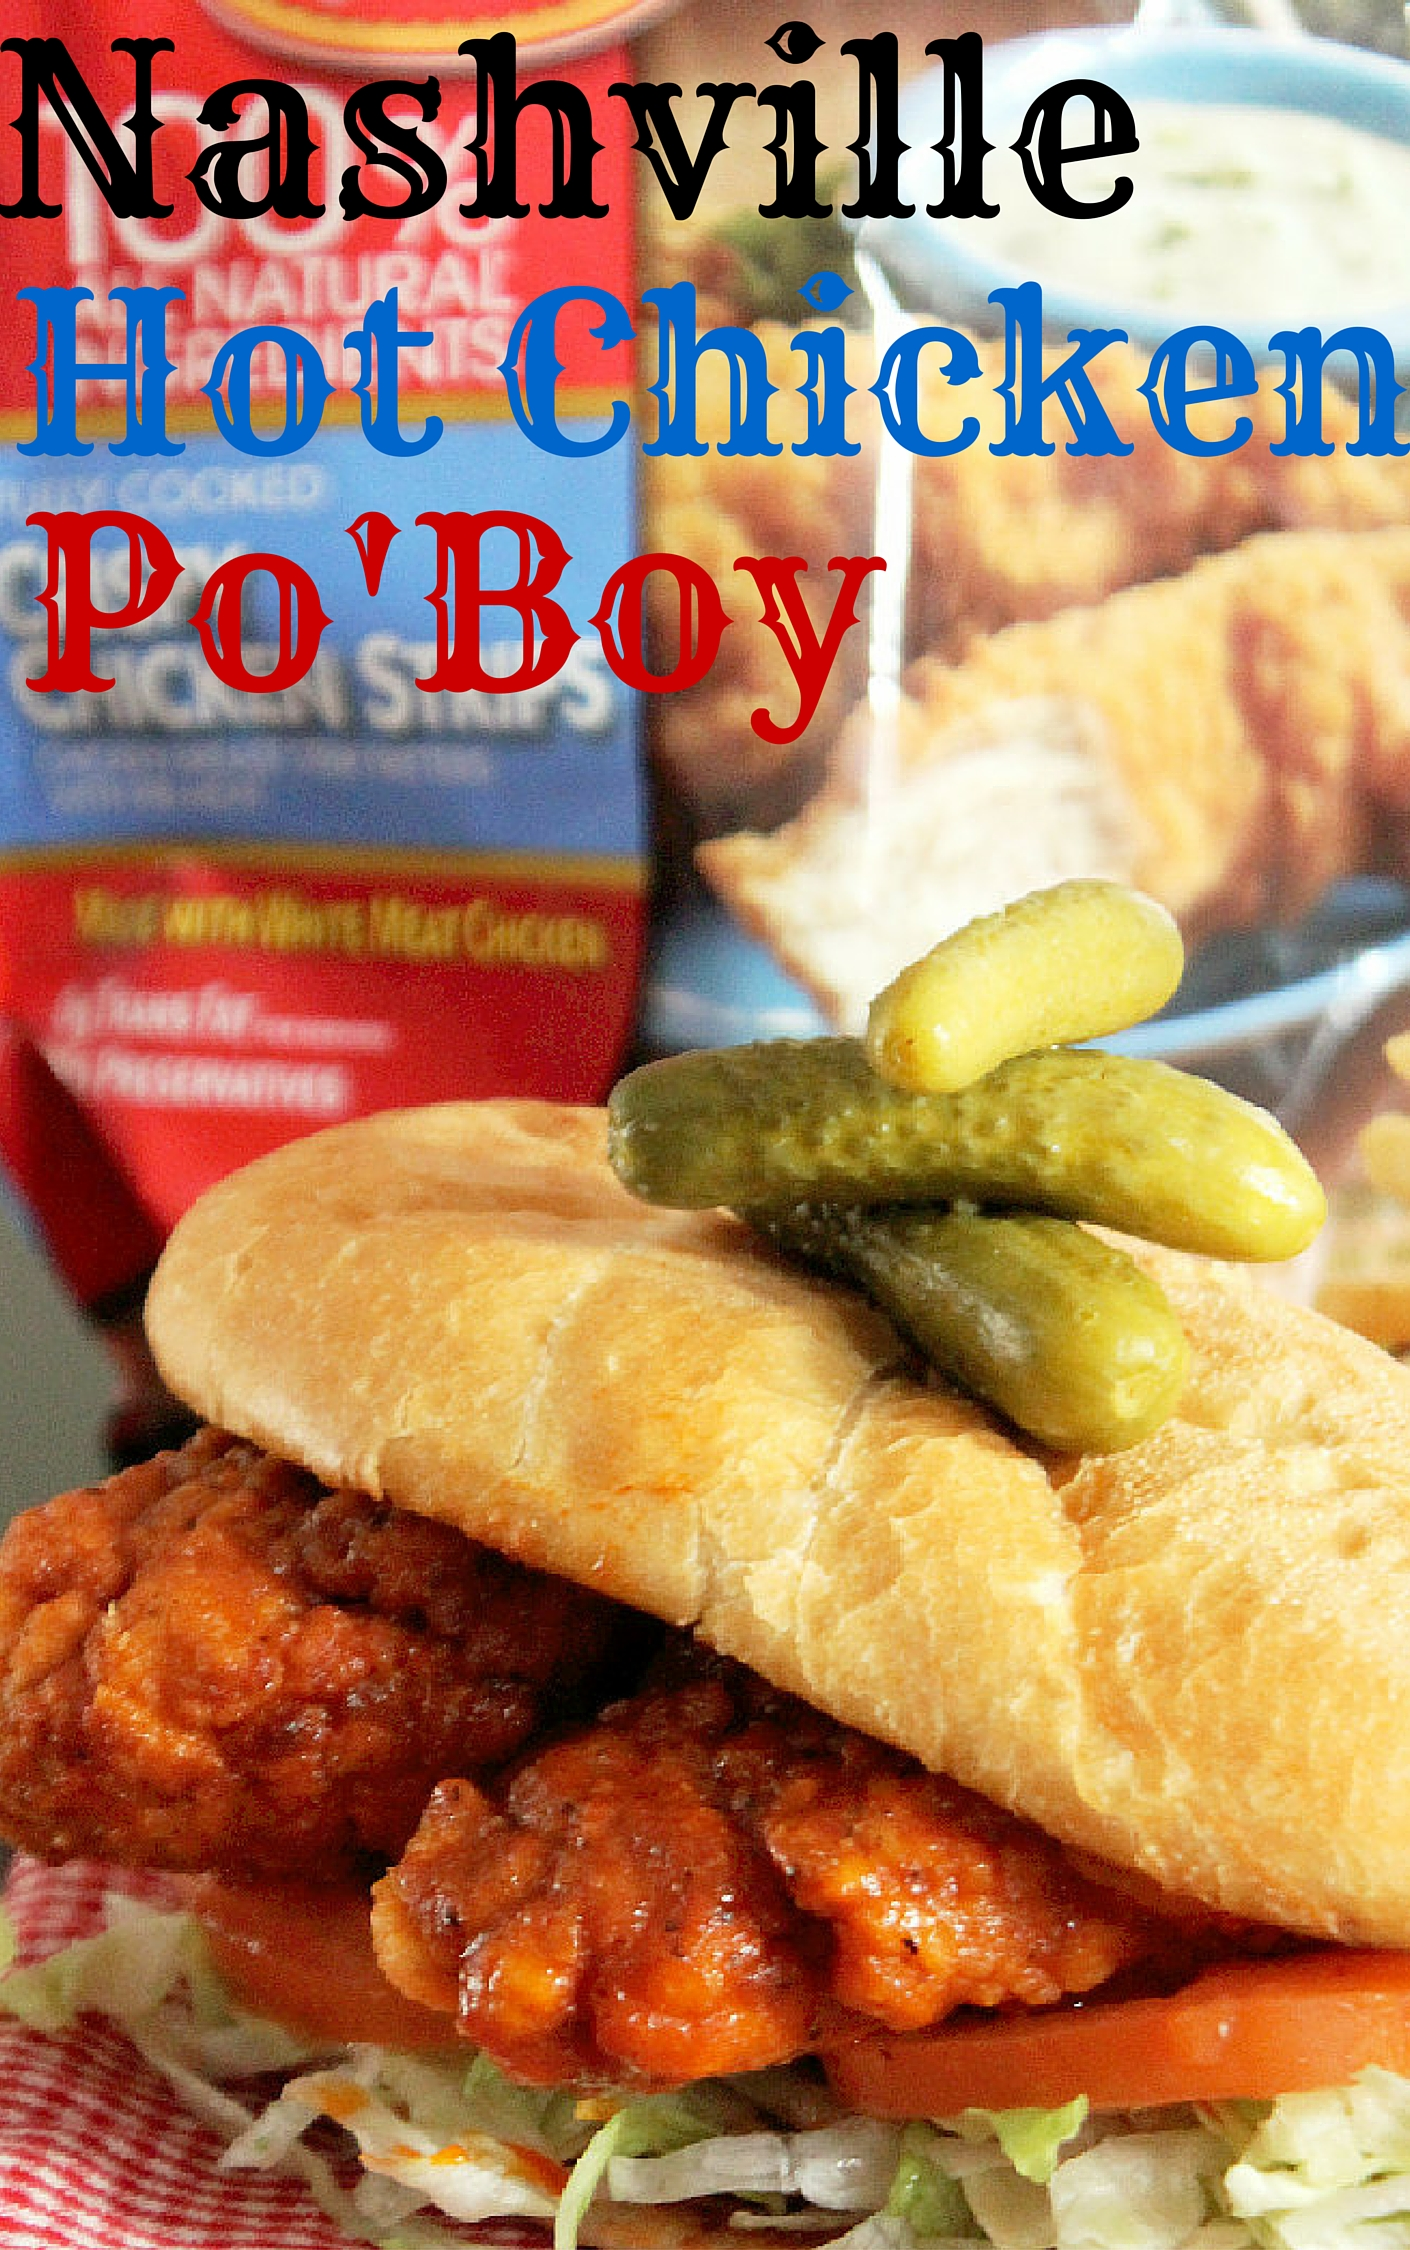 Nashville Hot Chicken Po Boy-Creole Contessa